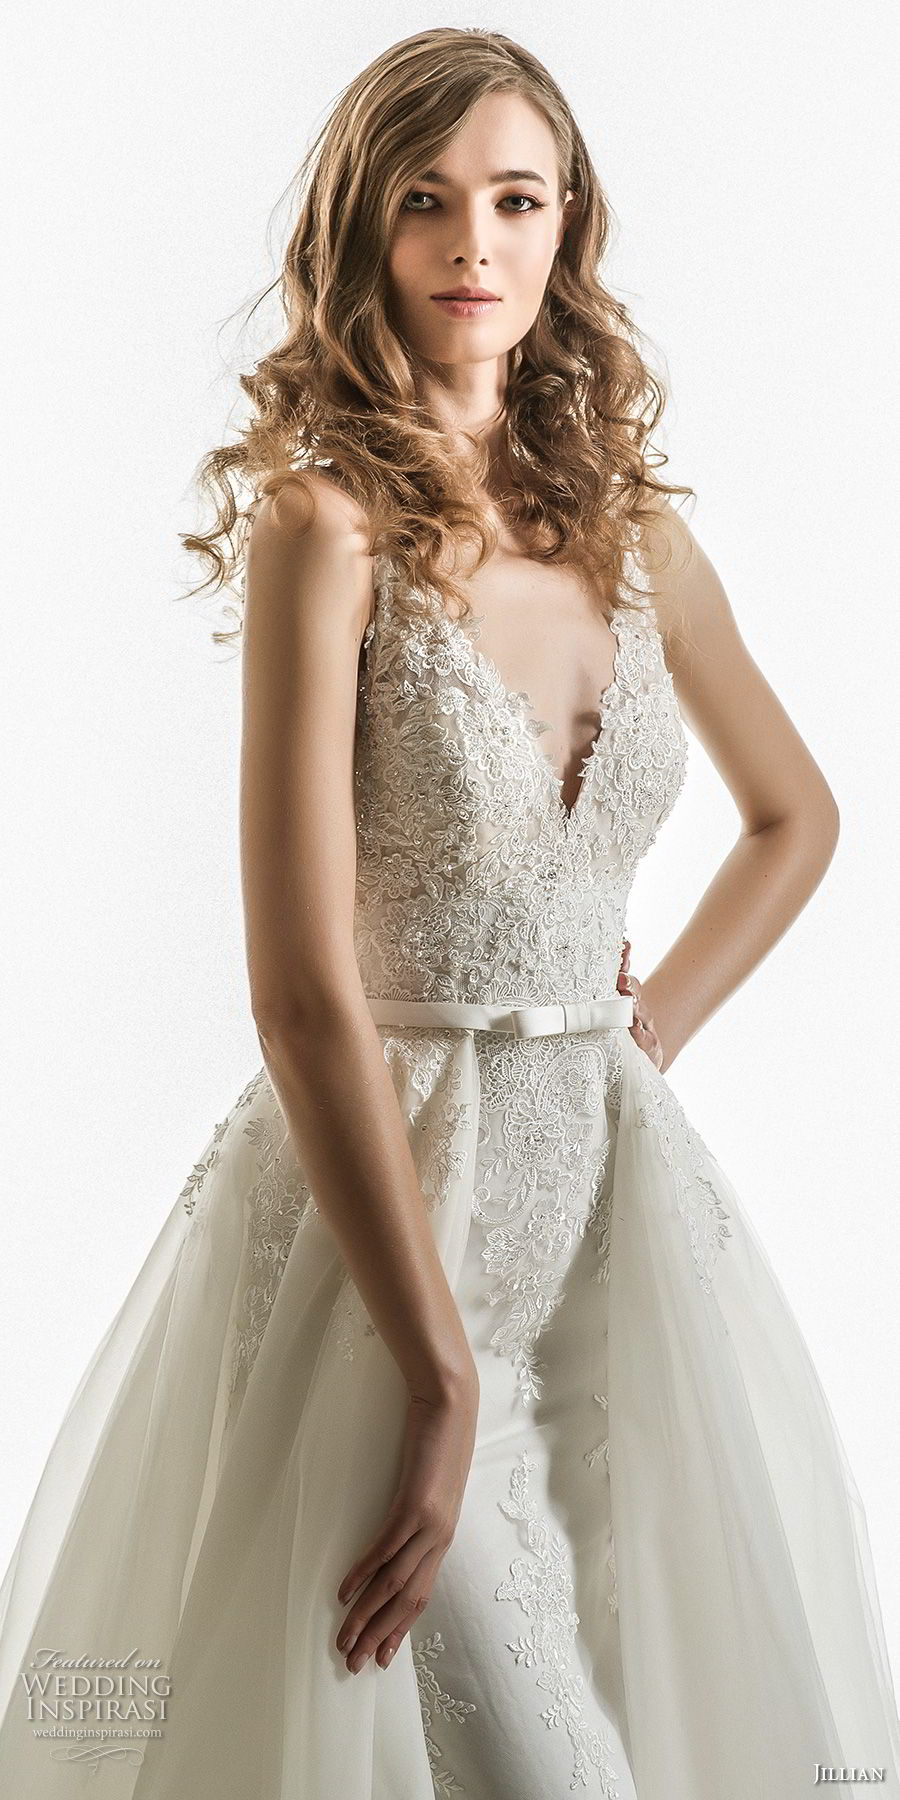 jillian 2018 bridal sleeveless v neck heavily embellished bodice elegant romantic sheath wedding dress a  line overskirt chapel train (04) zv